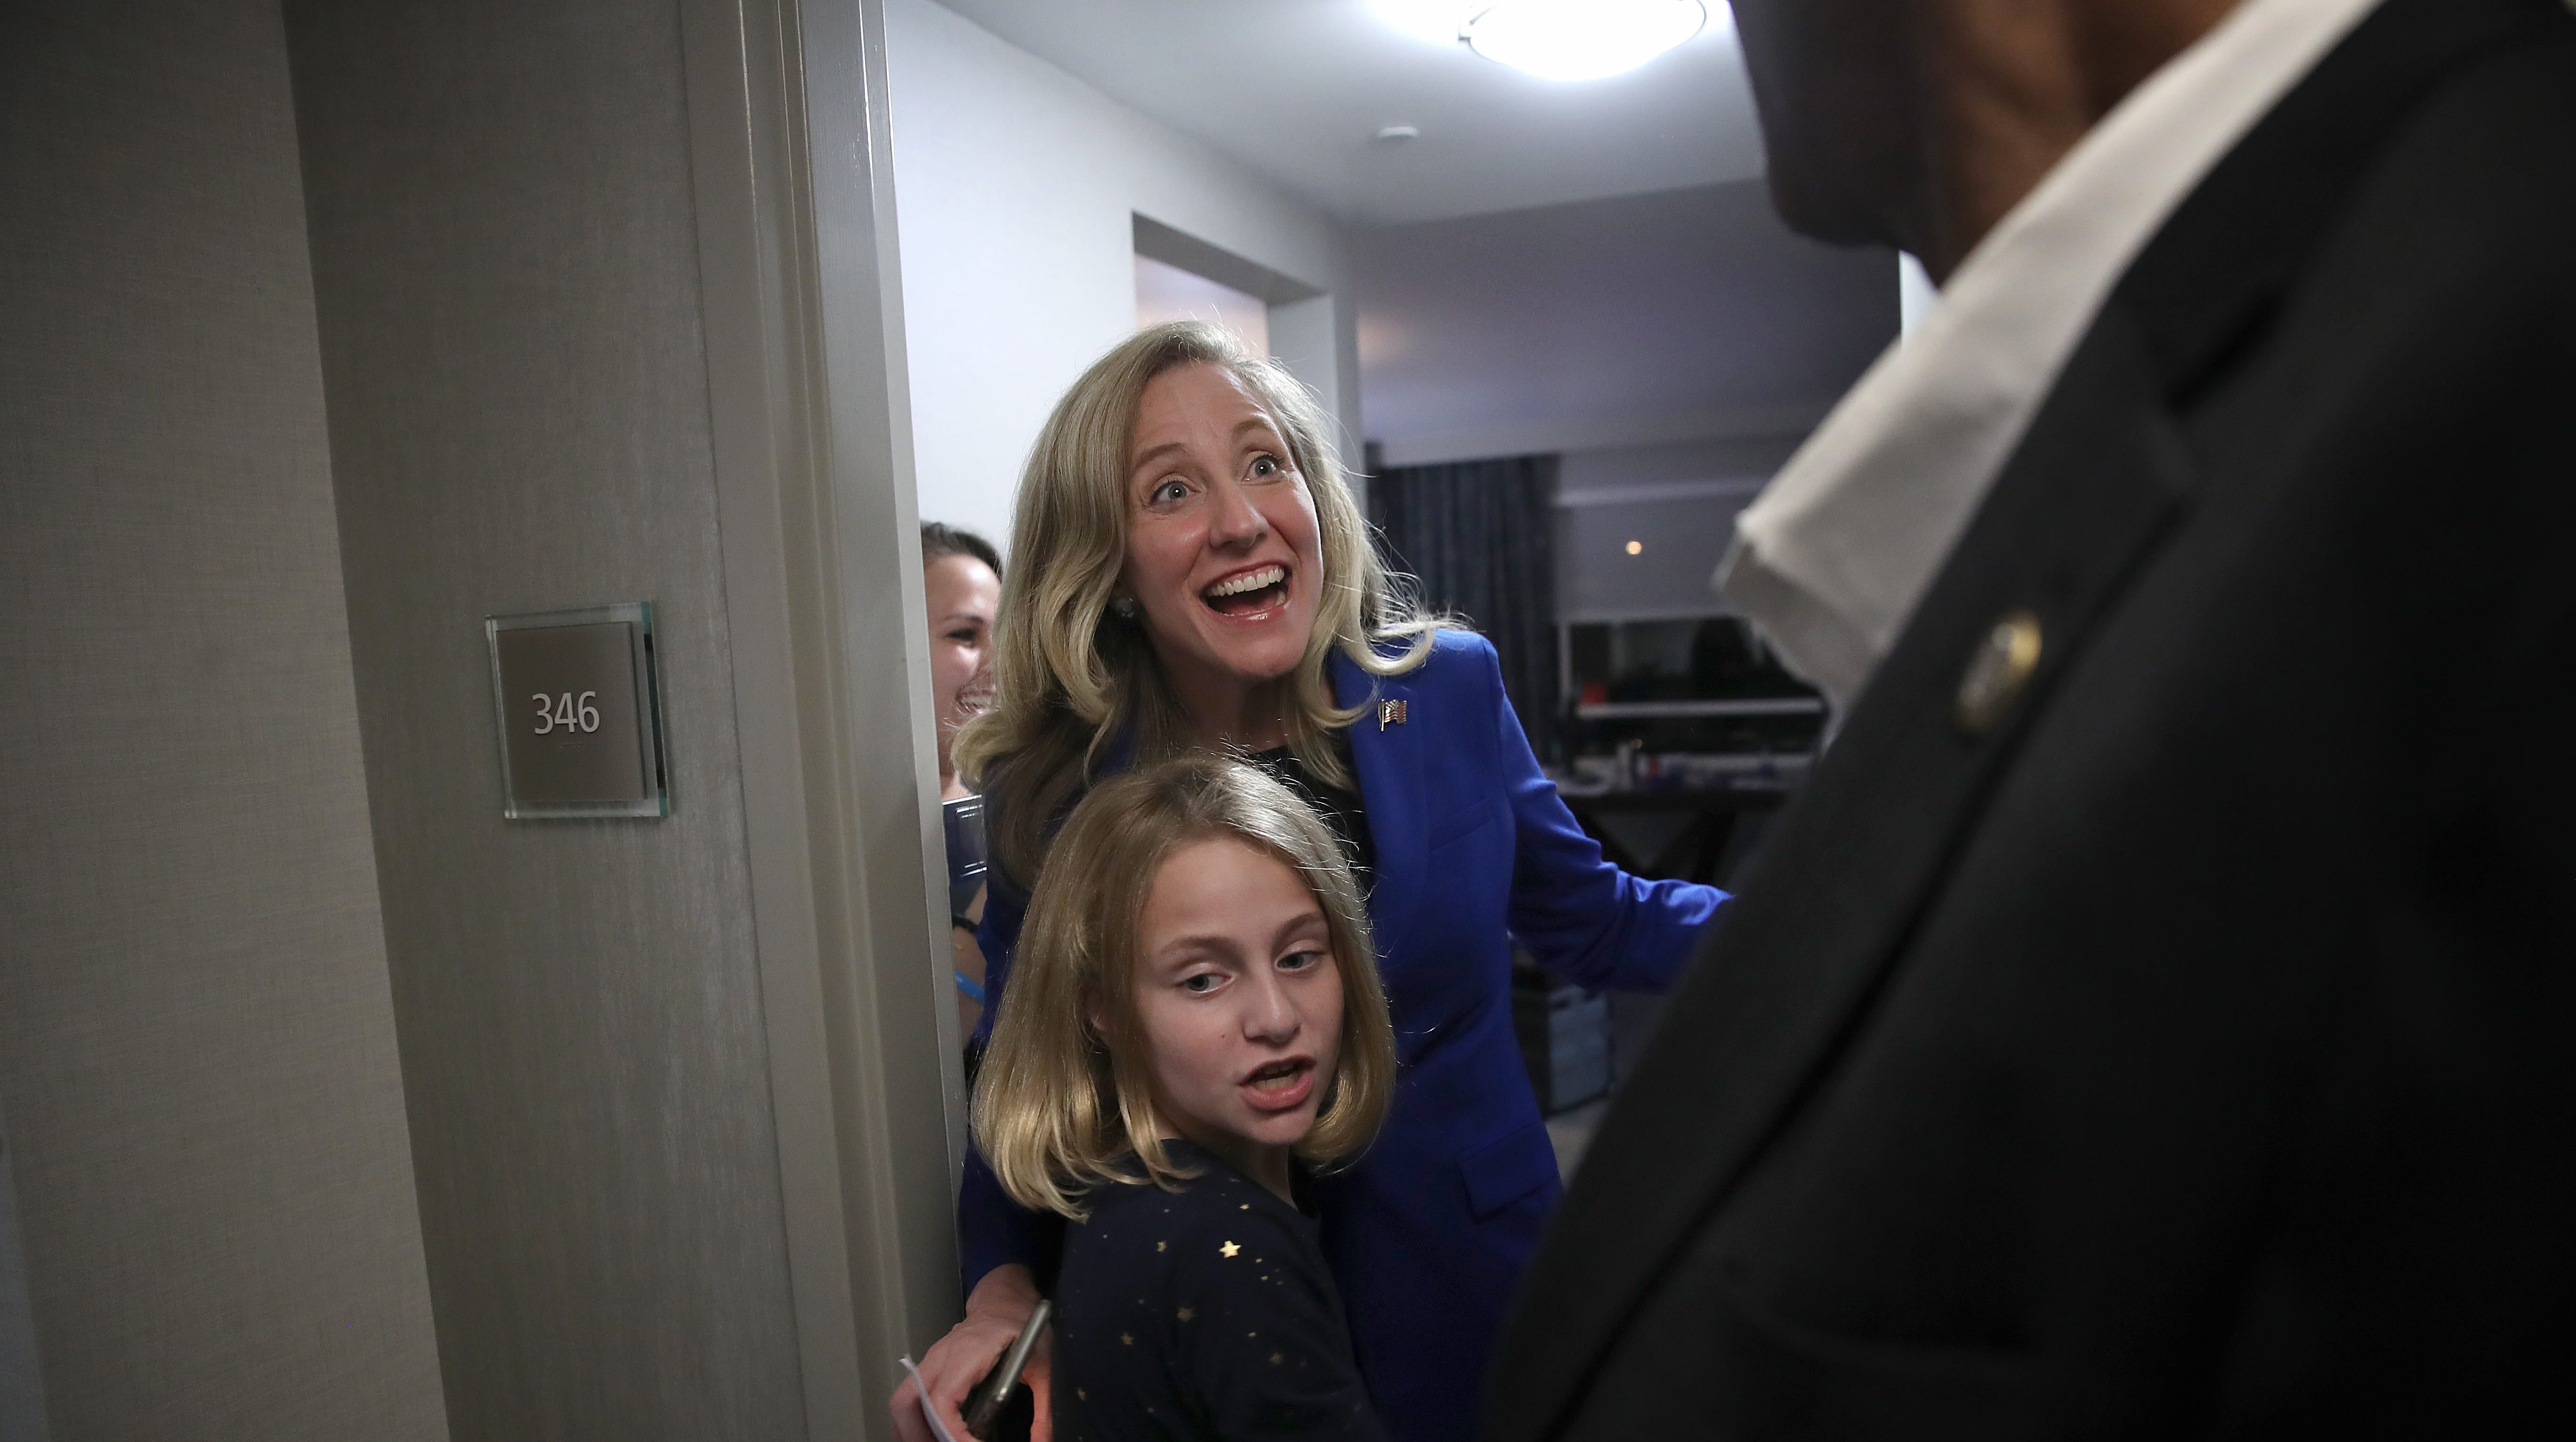 Abigail Spanberger, congresswoman-elect in Virginia's 7th District, celebrates with her daughter Clarie and members of her campaign staff on Nov. 6, 2018 in Richmond, Va., after hearing that the Democratic party was on track to regain control of the House of Representatives.